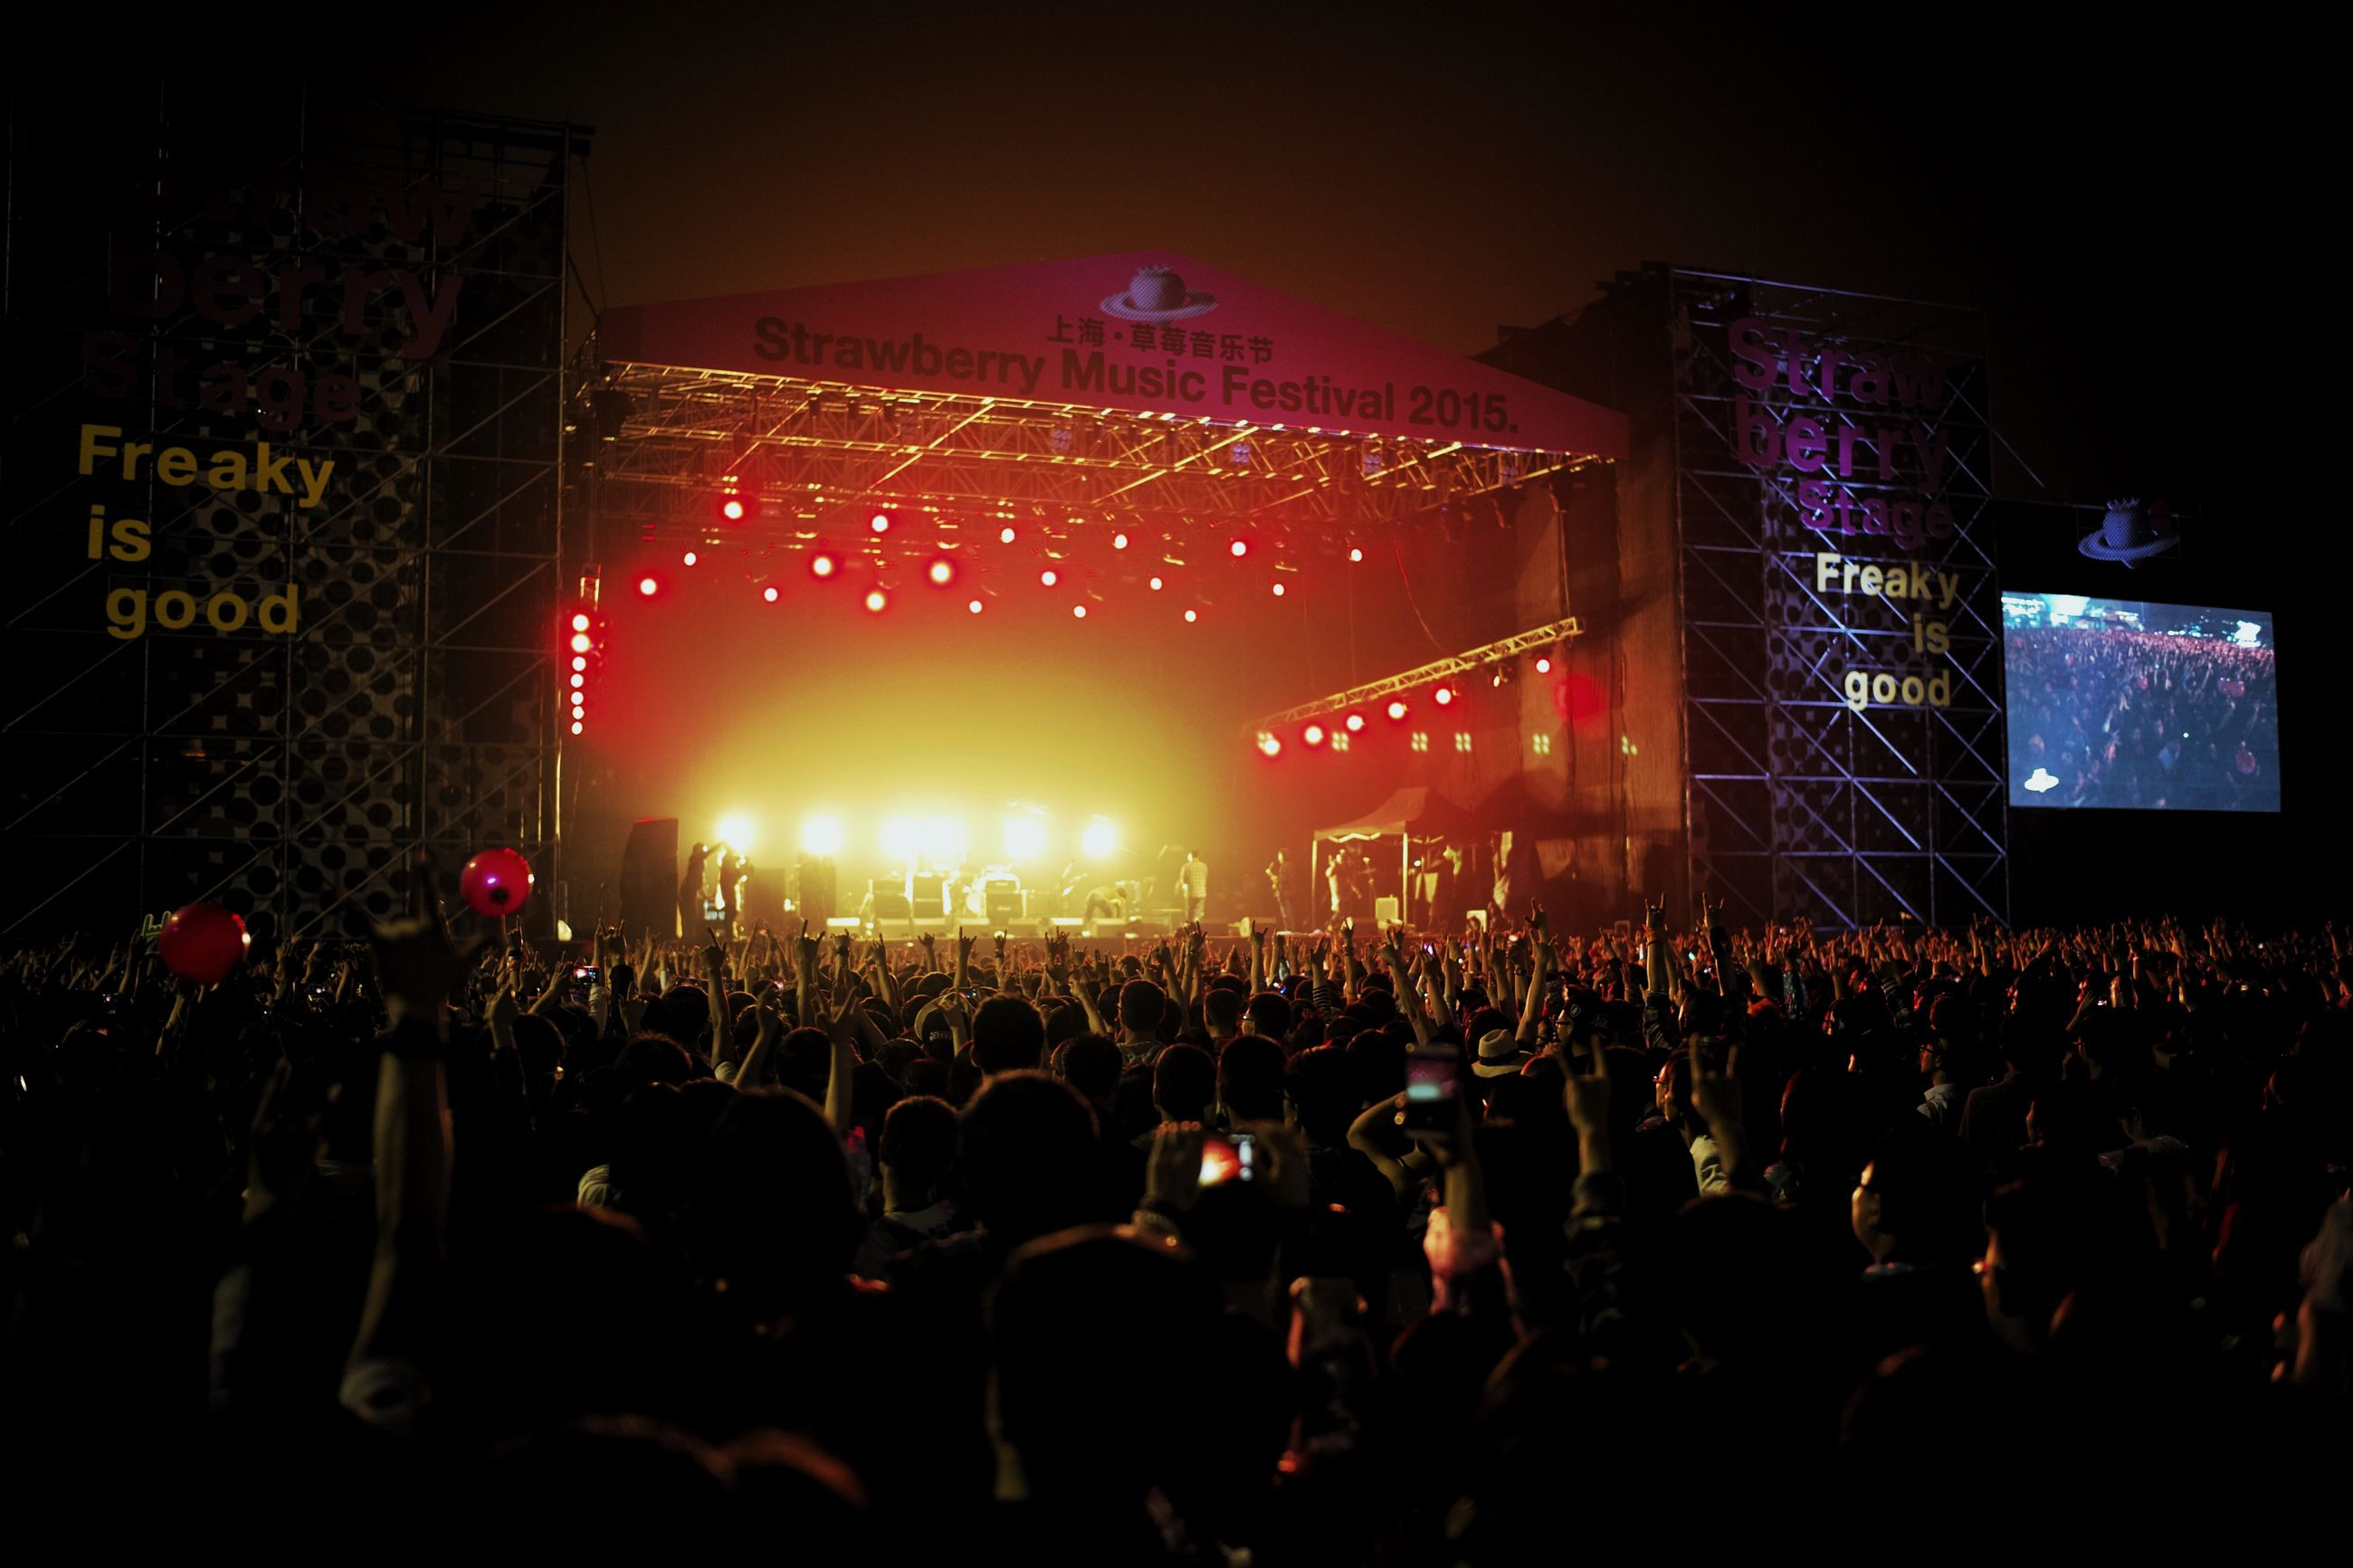 large group of people, illuminated, crowd, night, music, arts culture and entertainment, event, person, performance, lifestyles, celebration, enjoyment, nightlife, men, stage - performance space, music festival, leisure activity, concert